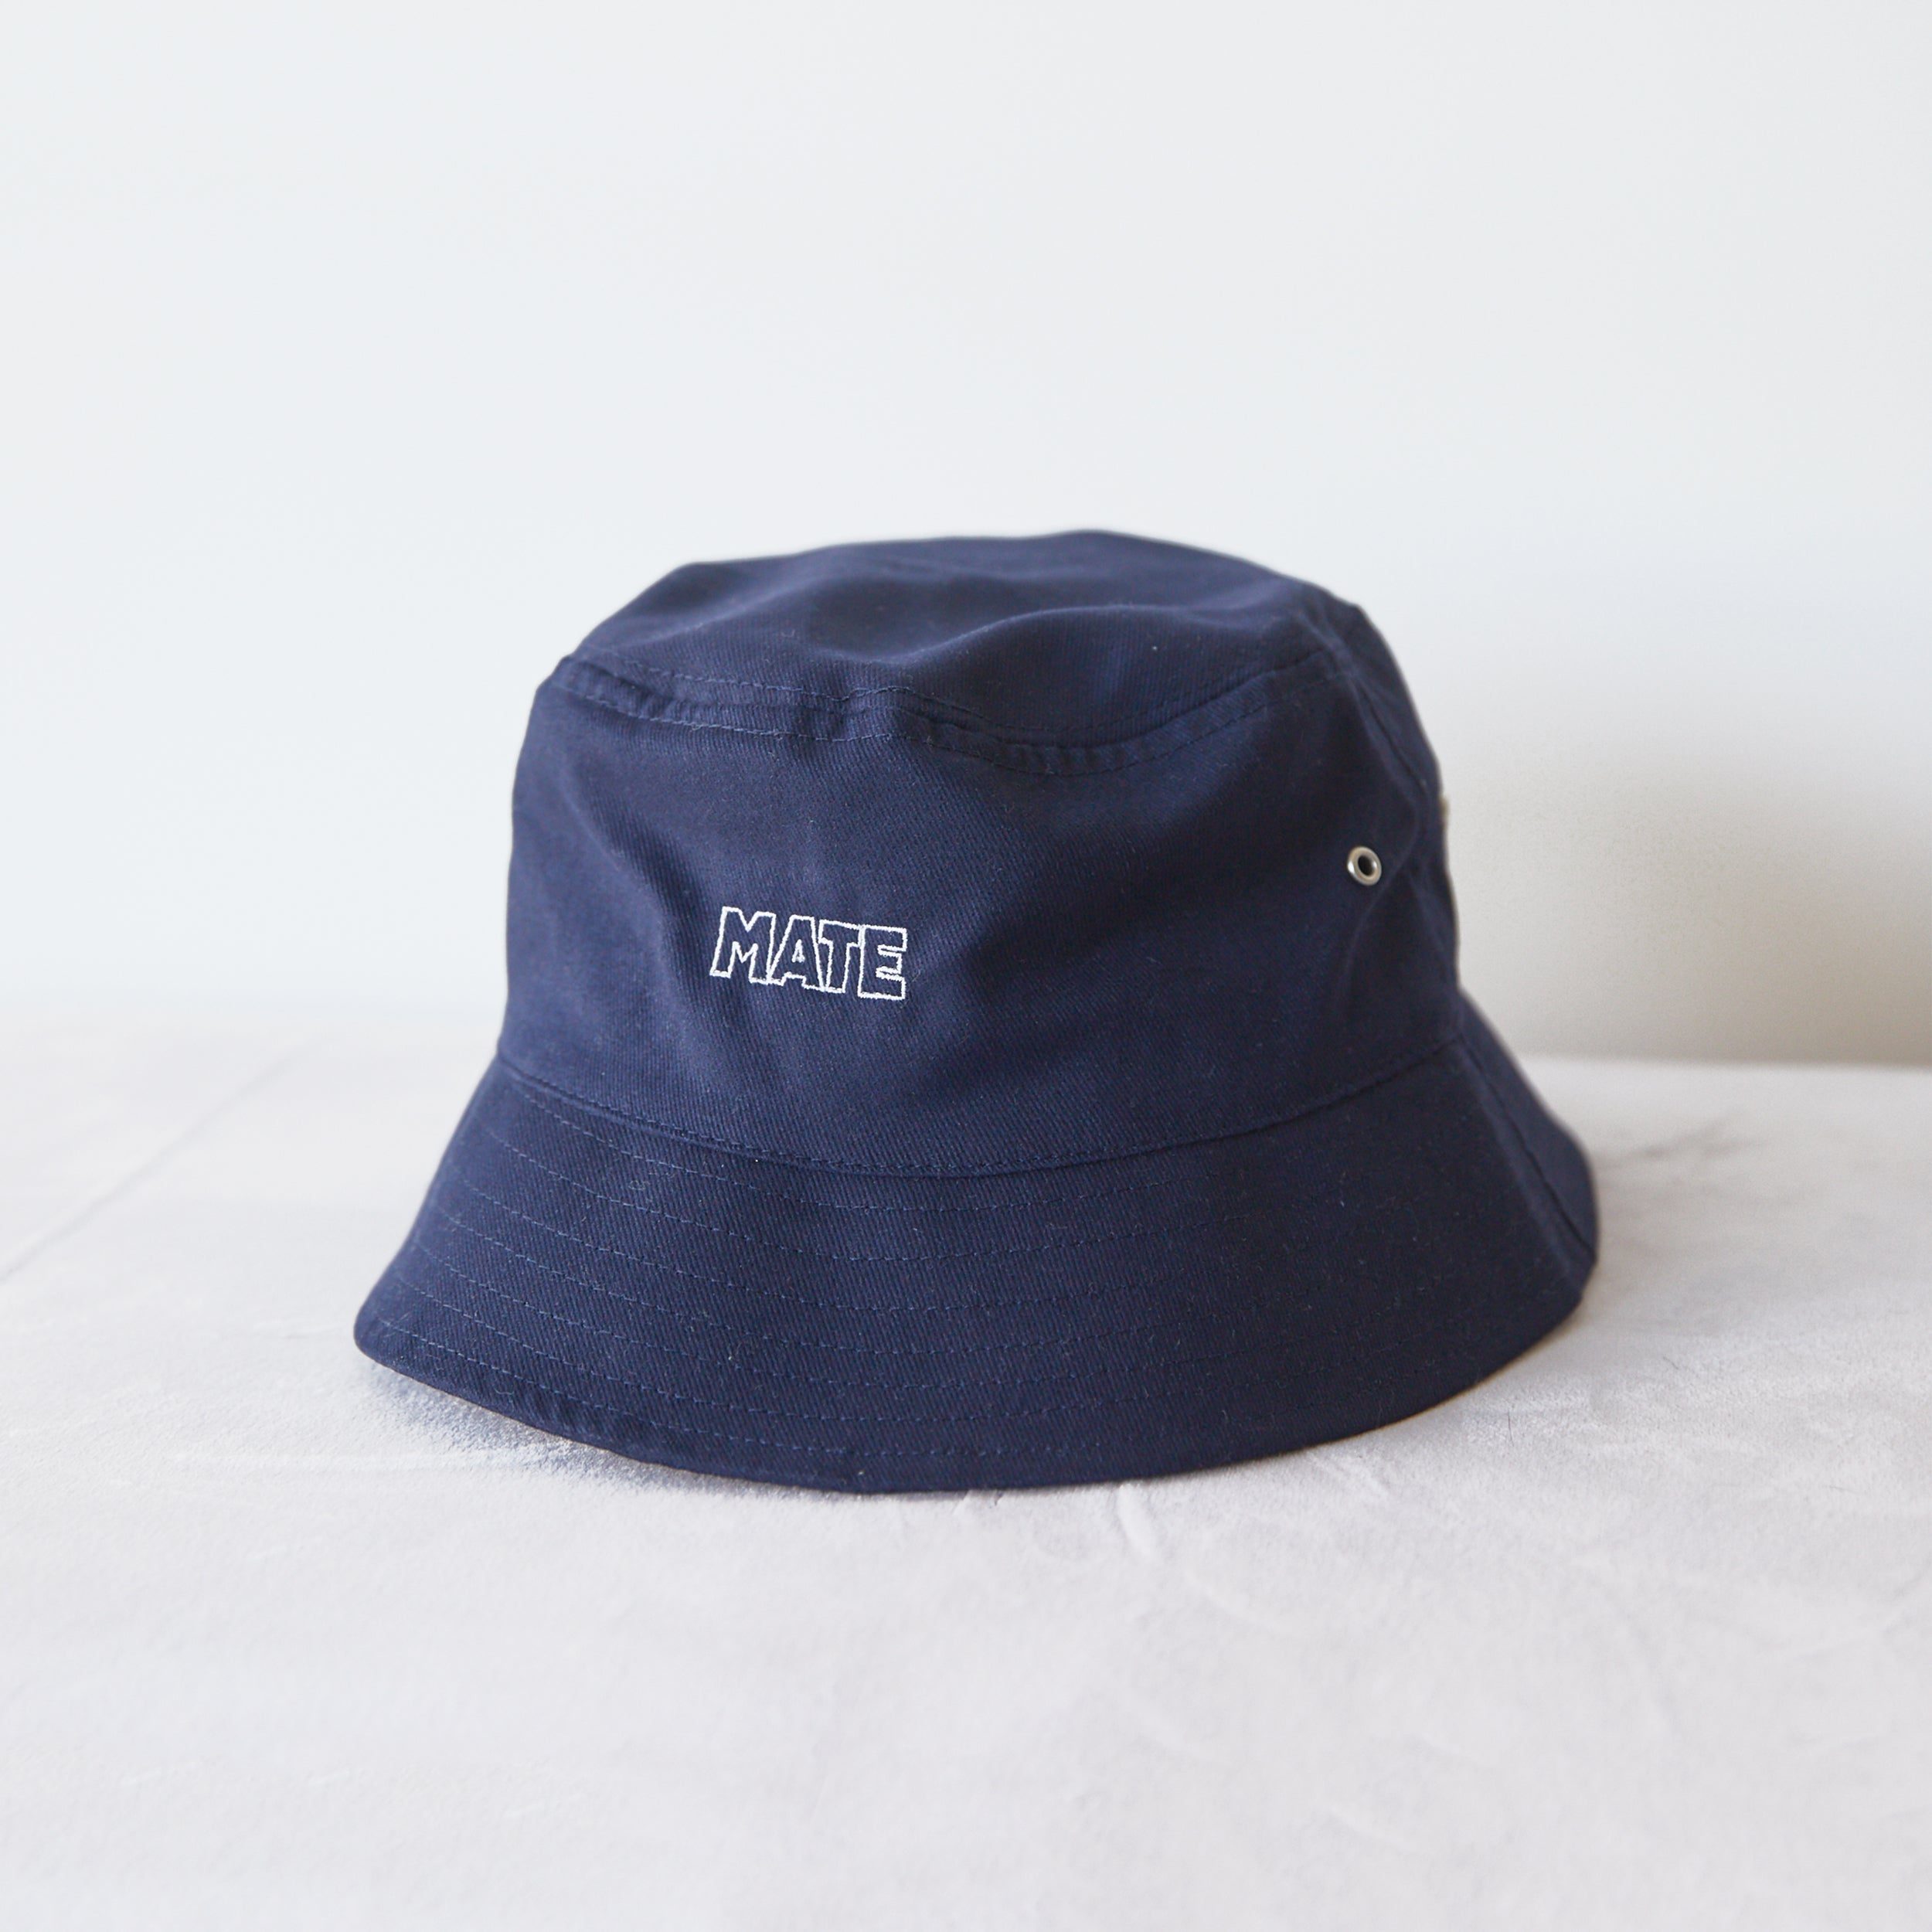 MATE BUCKET HAT - NAVY